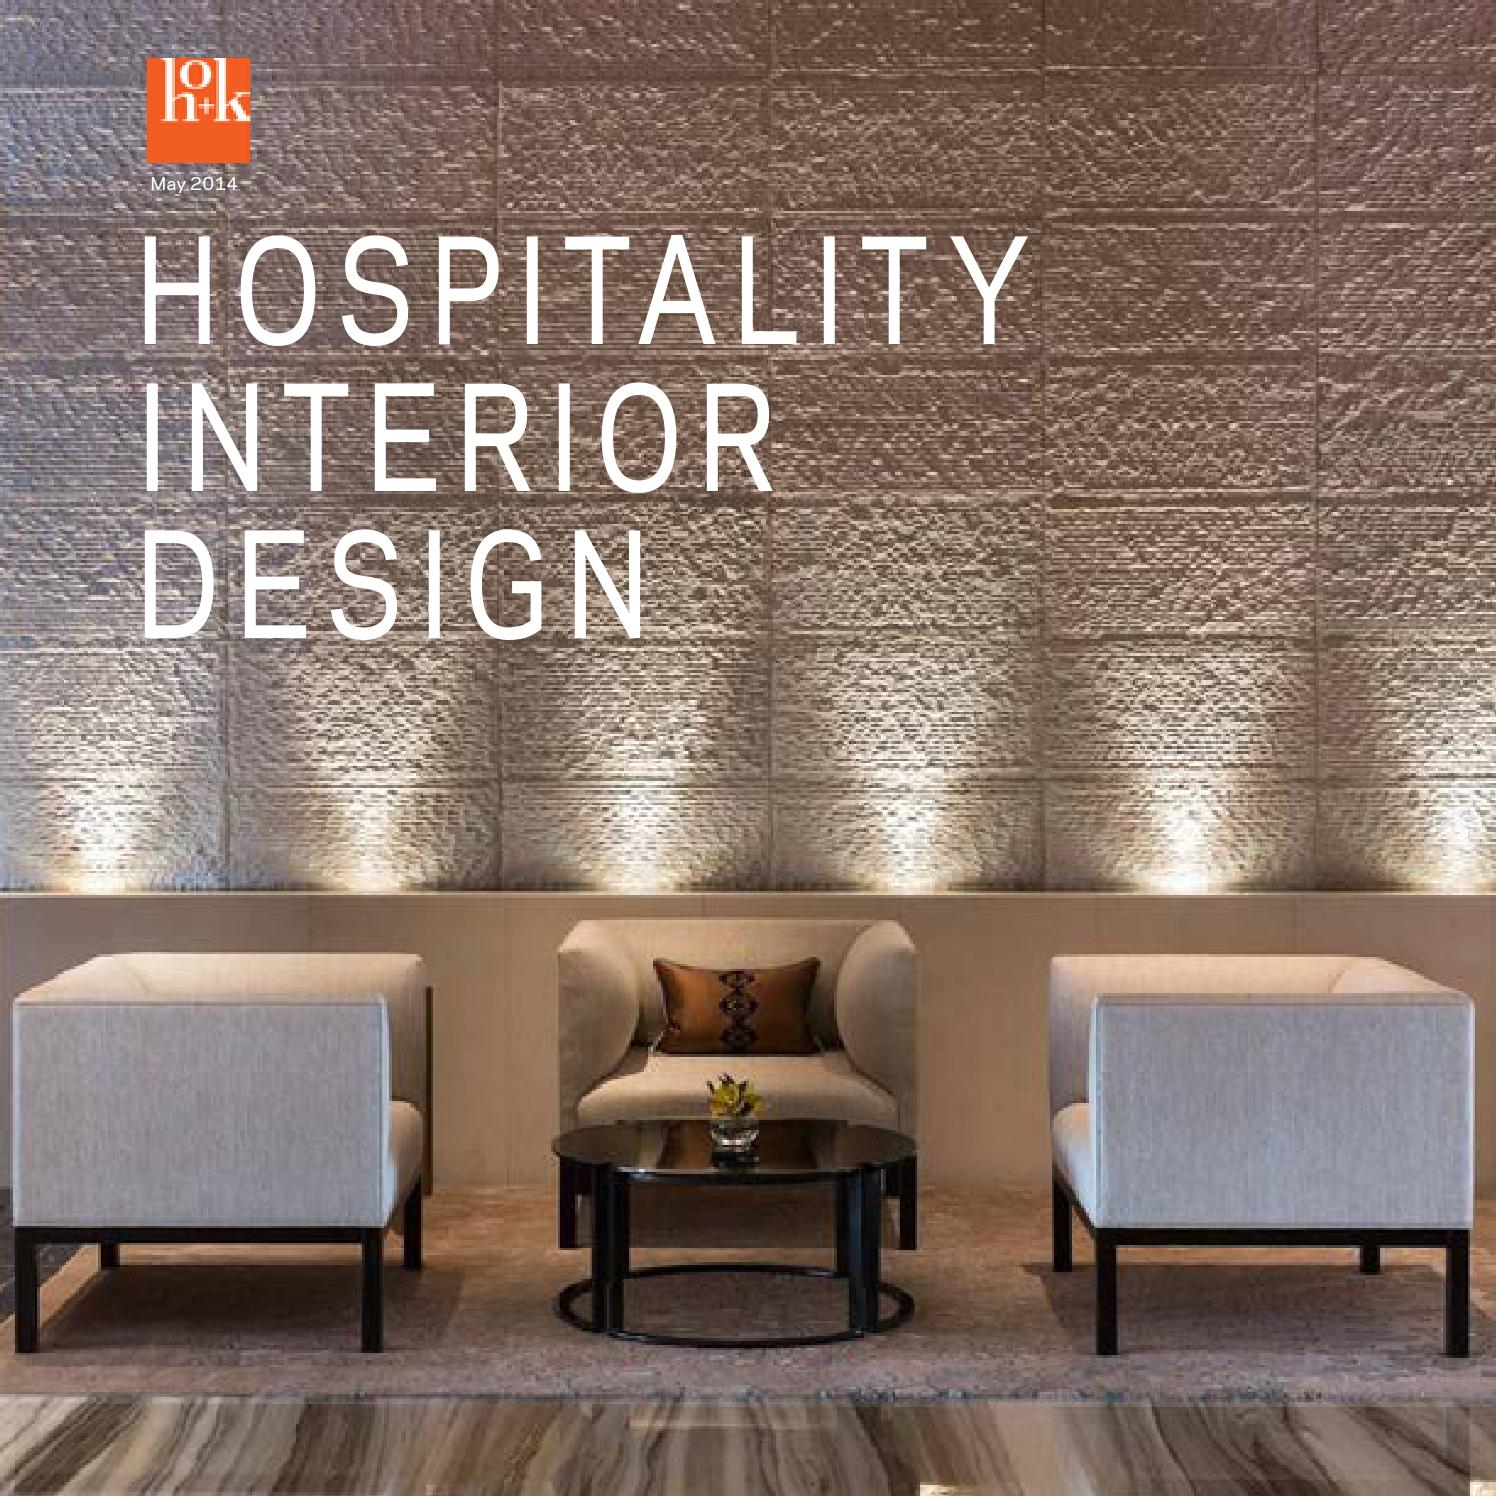 Hok Hospitality Interior Design By Hok Marketing Issuu